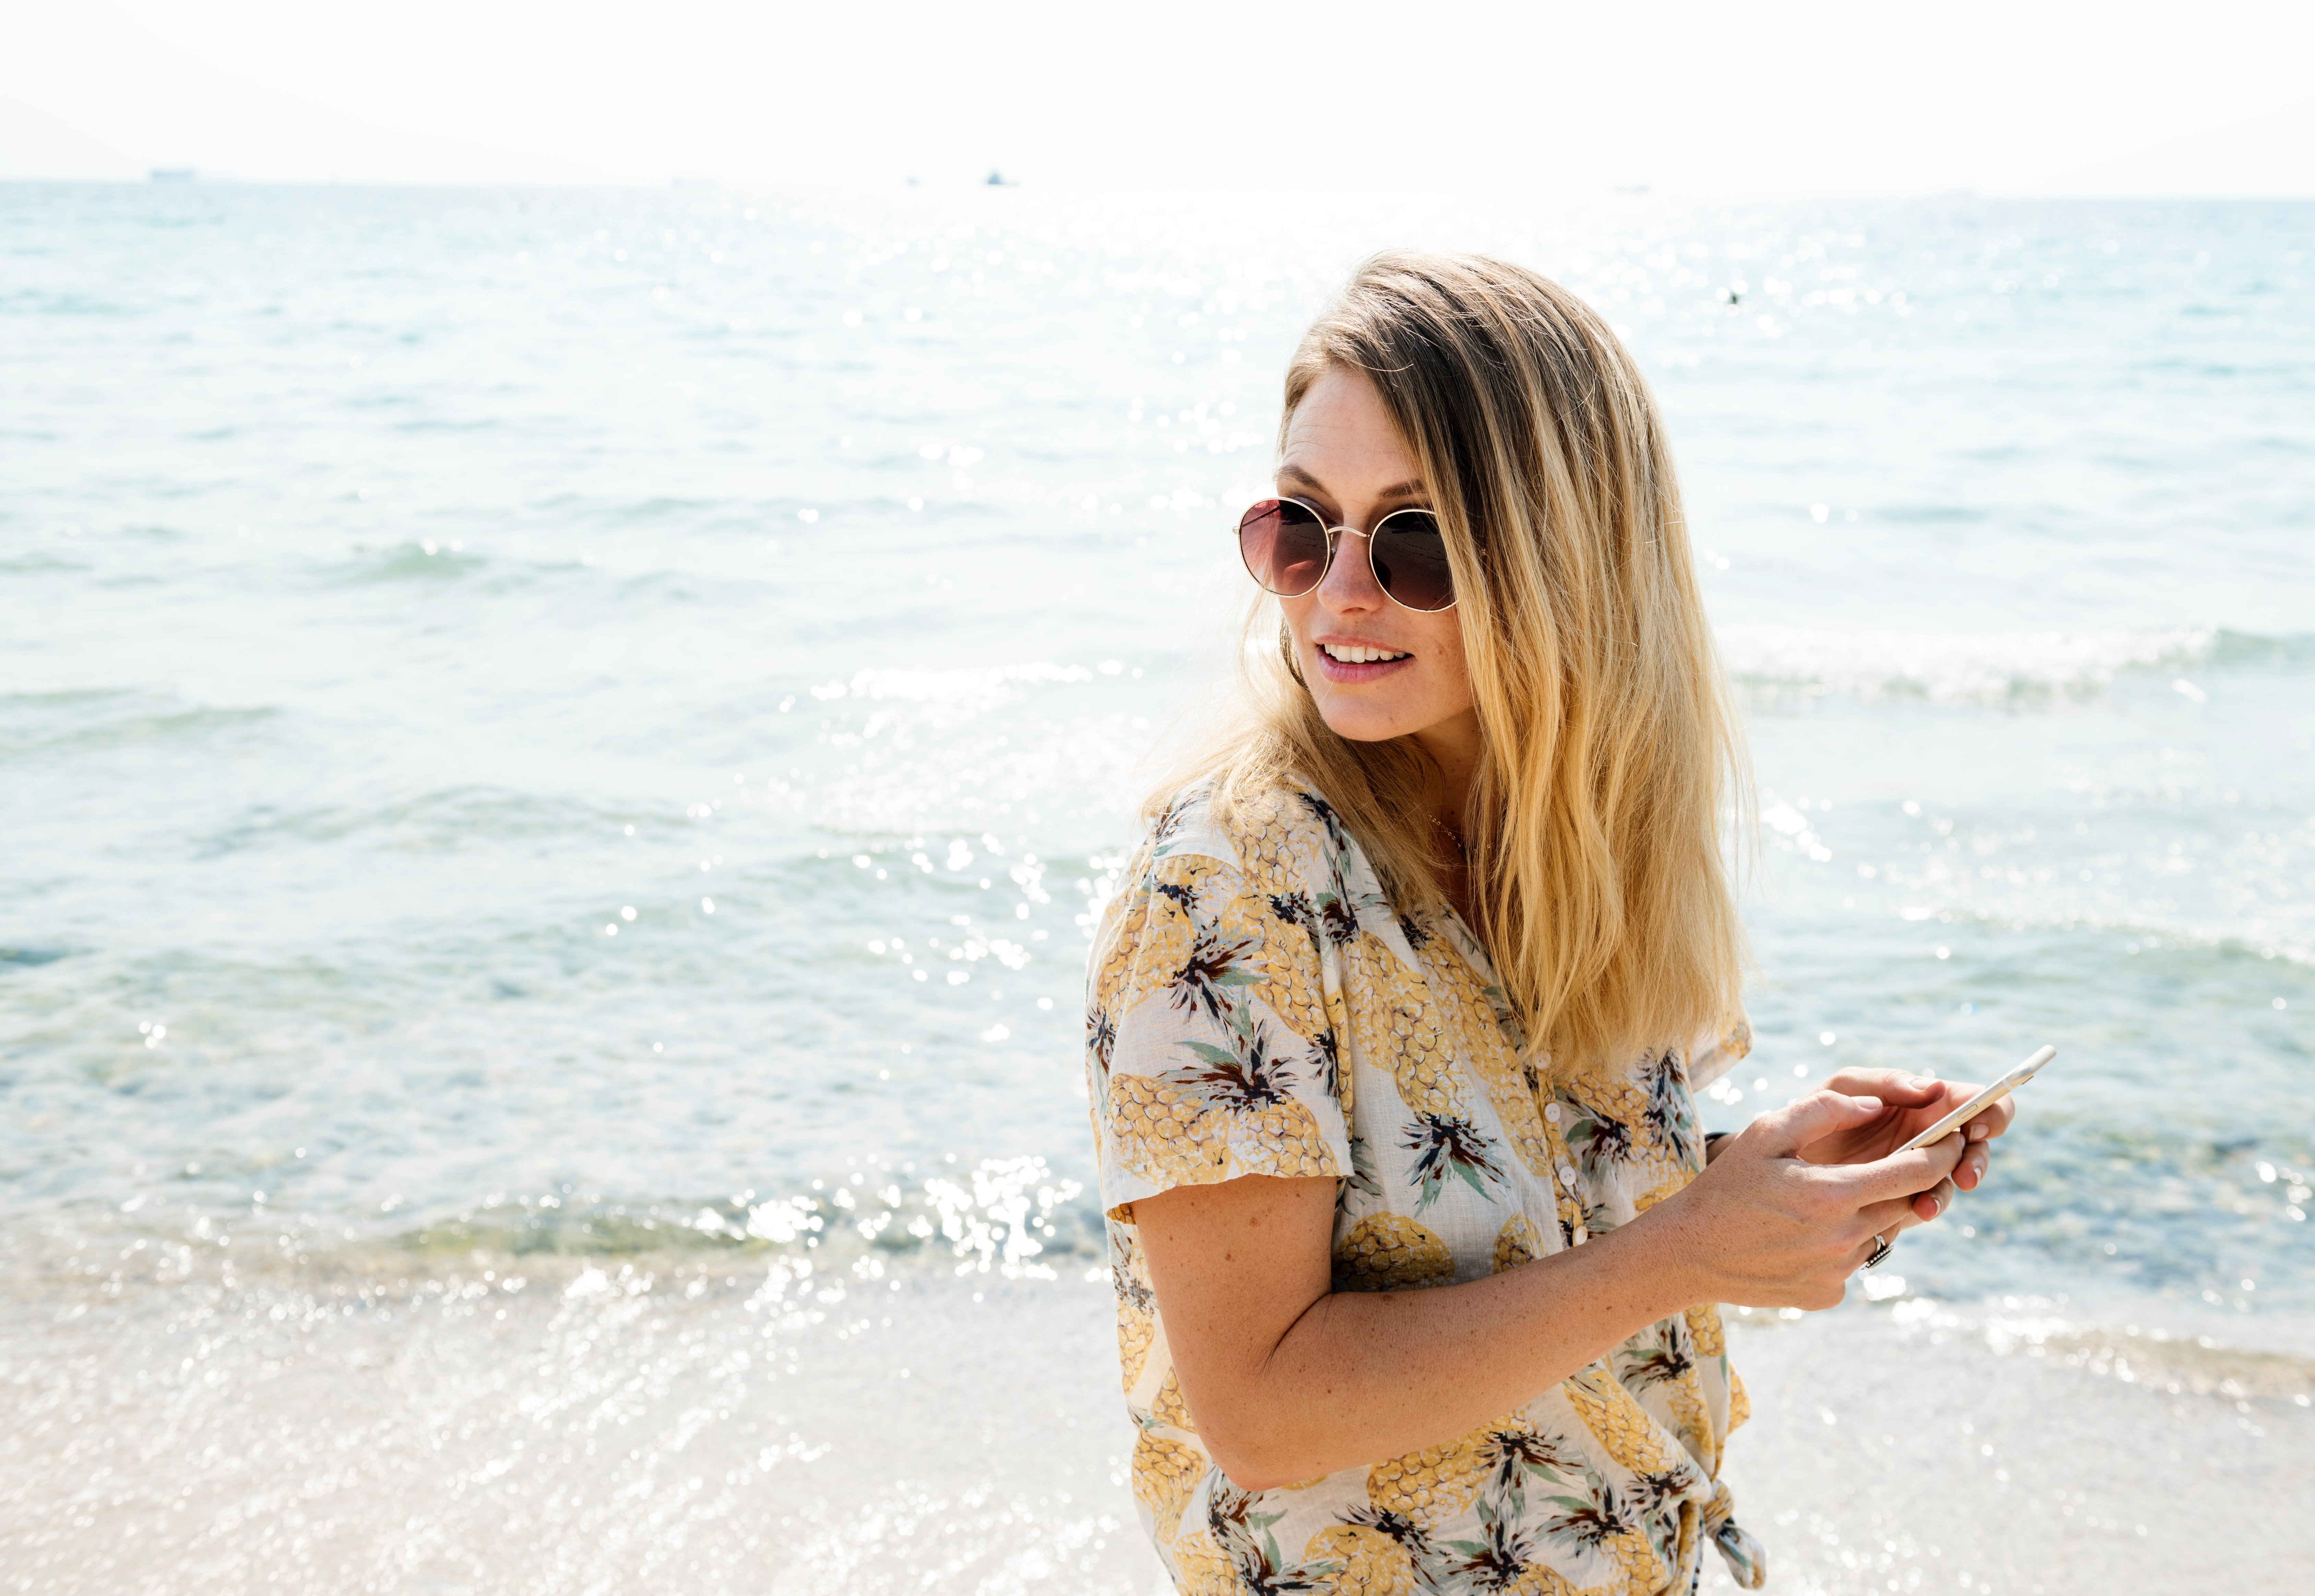 Woman in Black Yellow and White Floral Button-up Shirt Holding Smartphone Wearing Aviator Sunglasses Near Body of Water, Adventure, Tourism, Sea, Seashore, HQ Photo